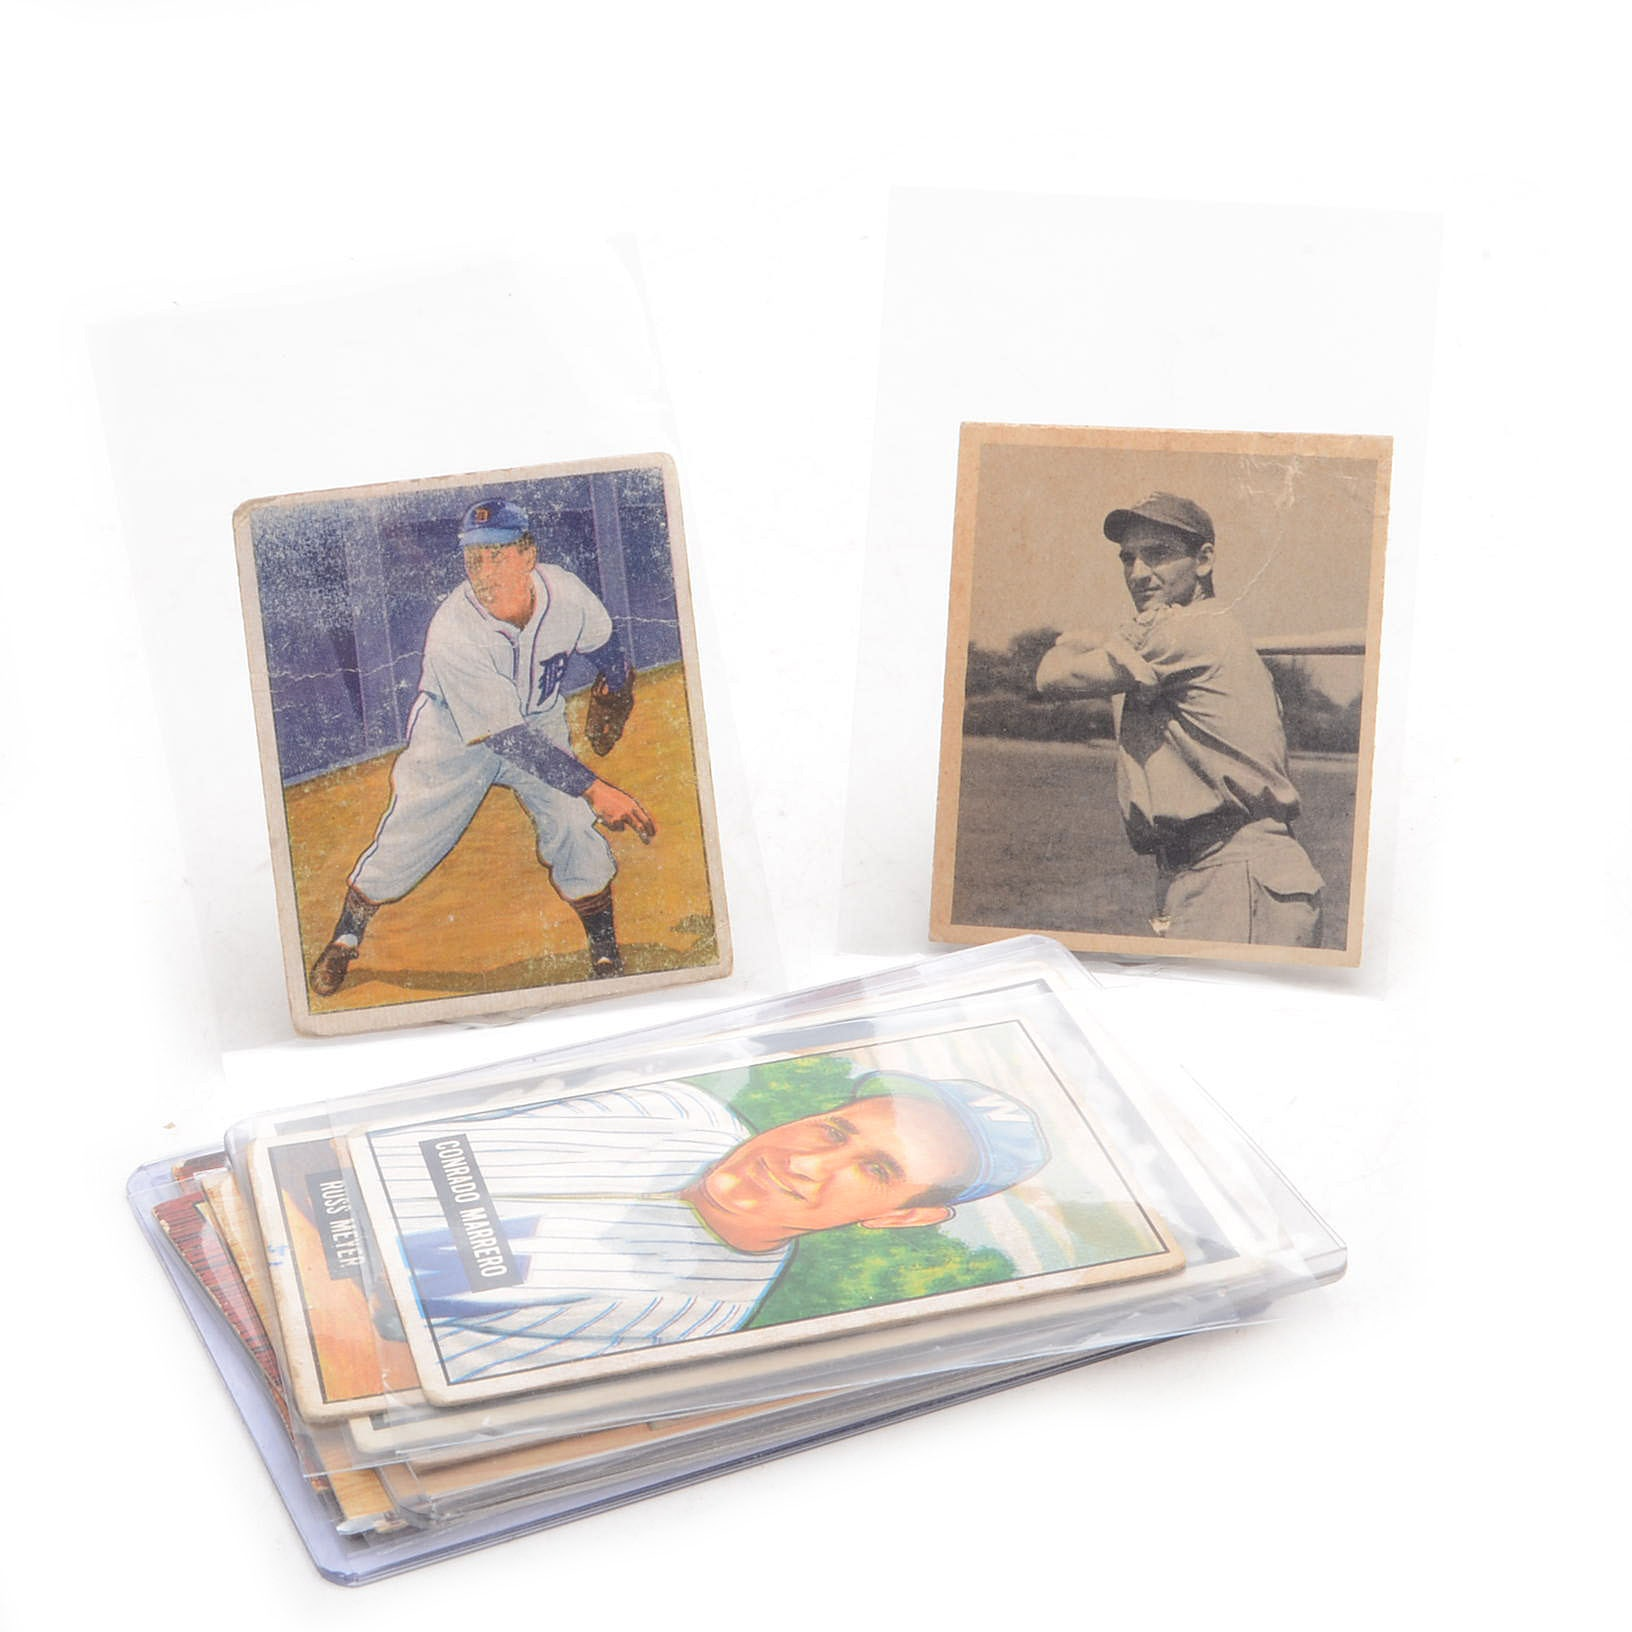 Eleven 1940s and 1950s Bowman Baseball Cards With Hall Of Fame Players